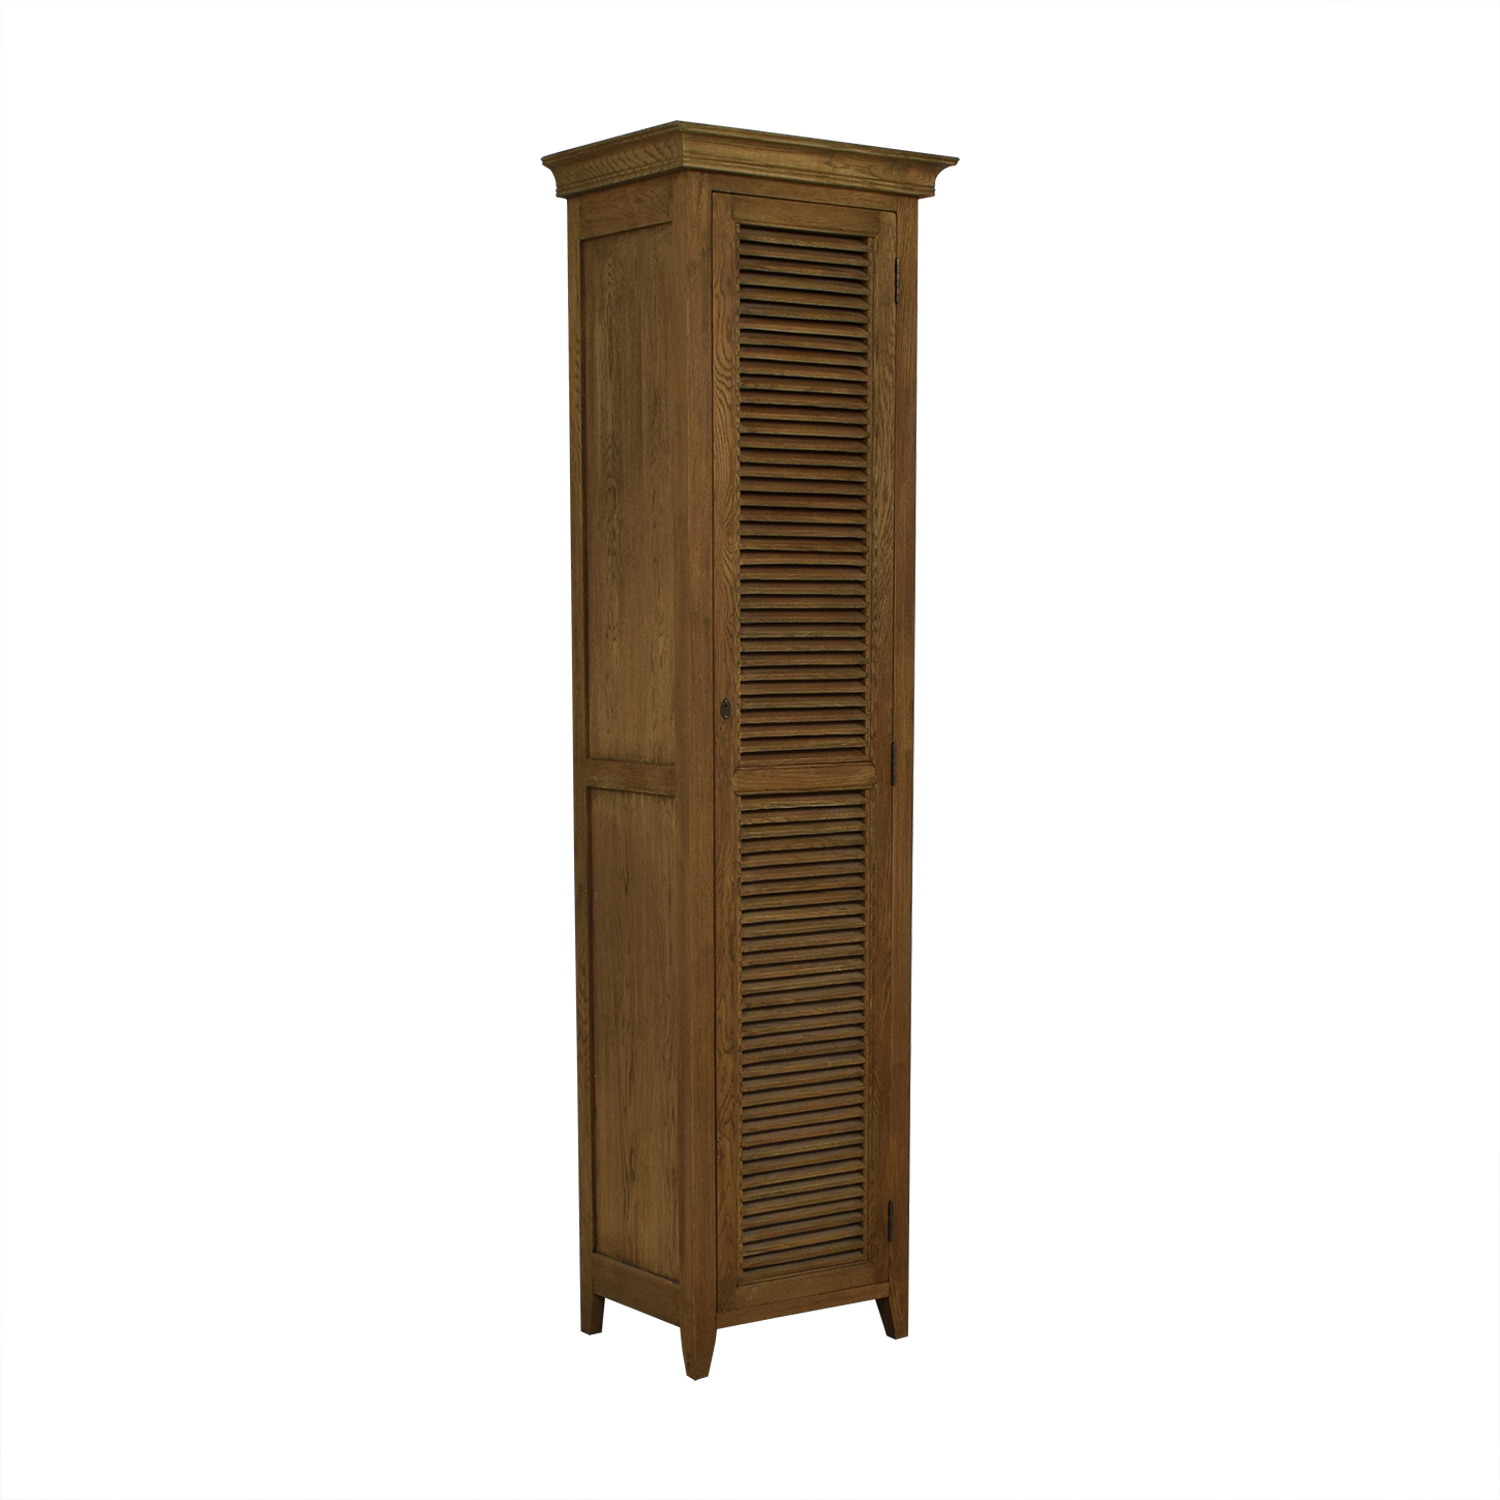 Restoration Hardware Restoration Hardware Tall Shutter Cabinet coupon